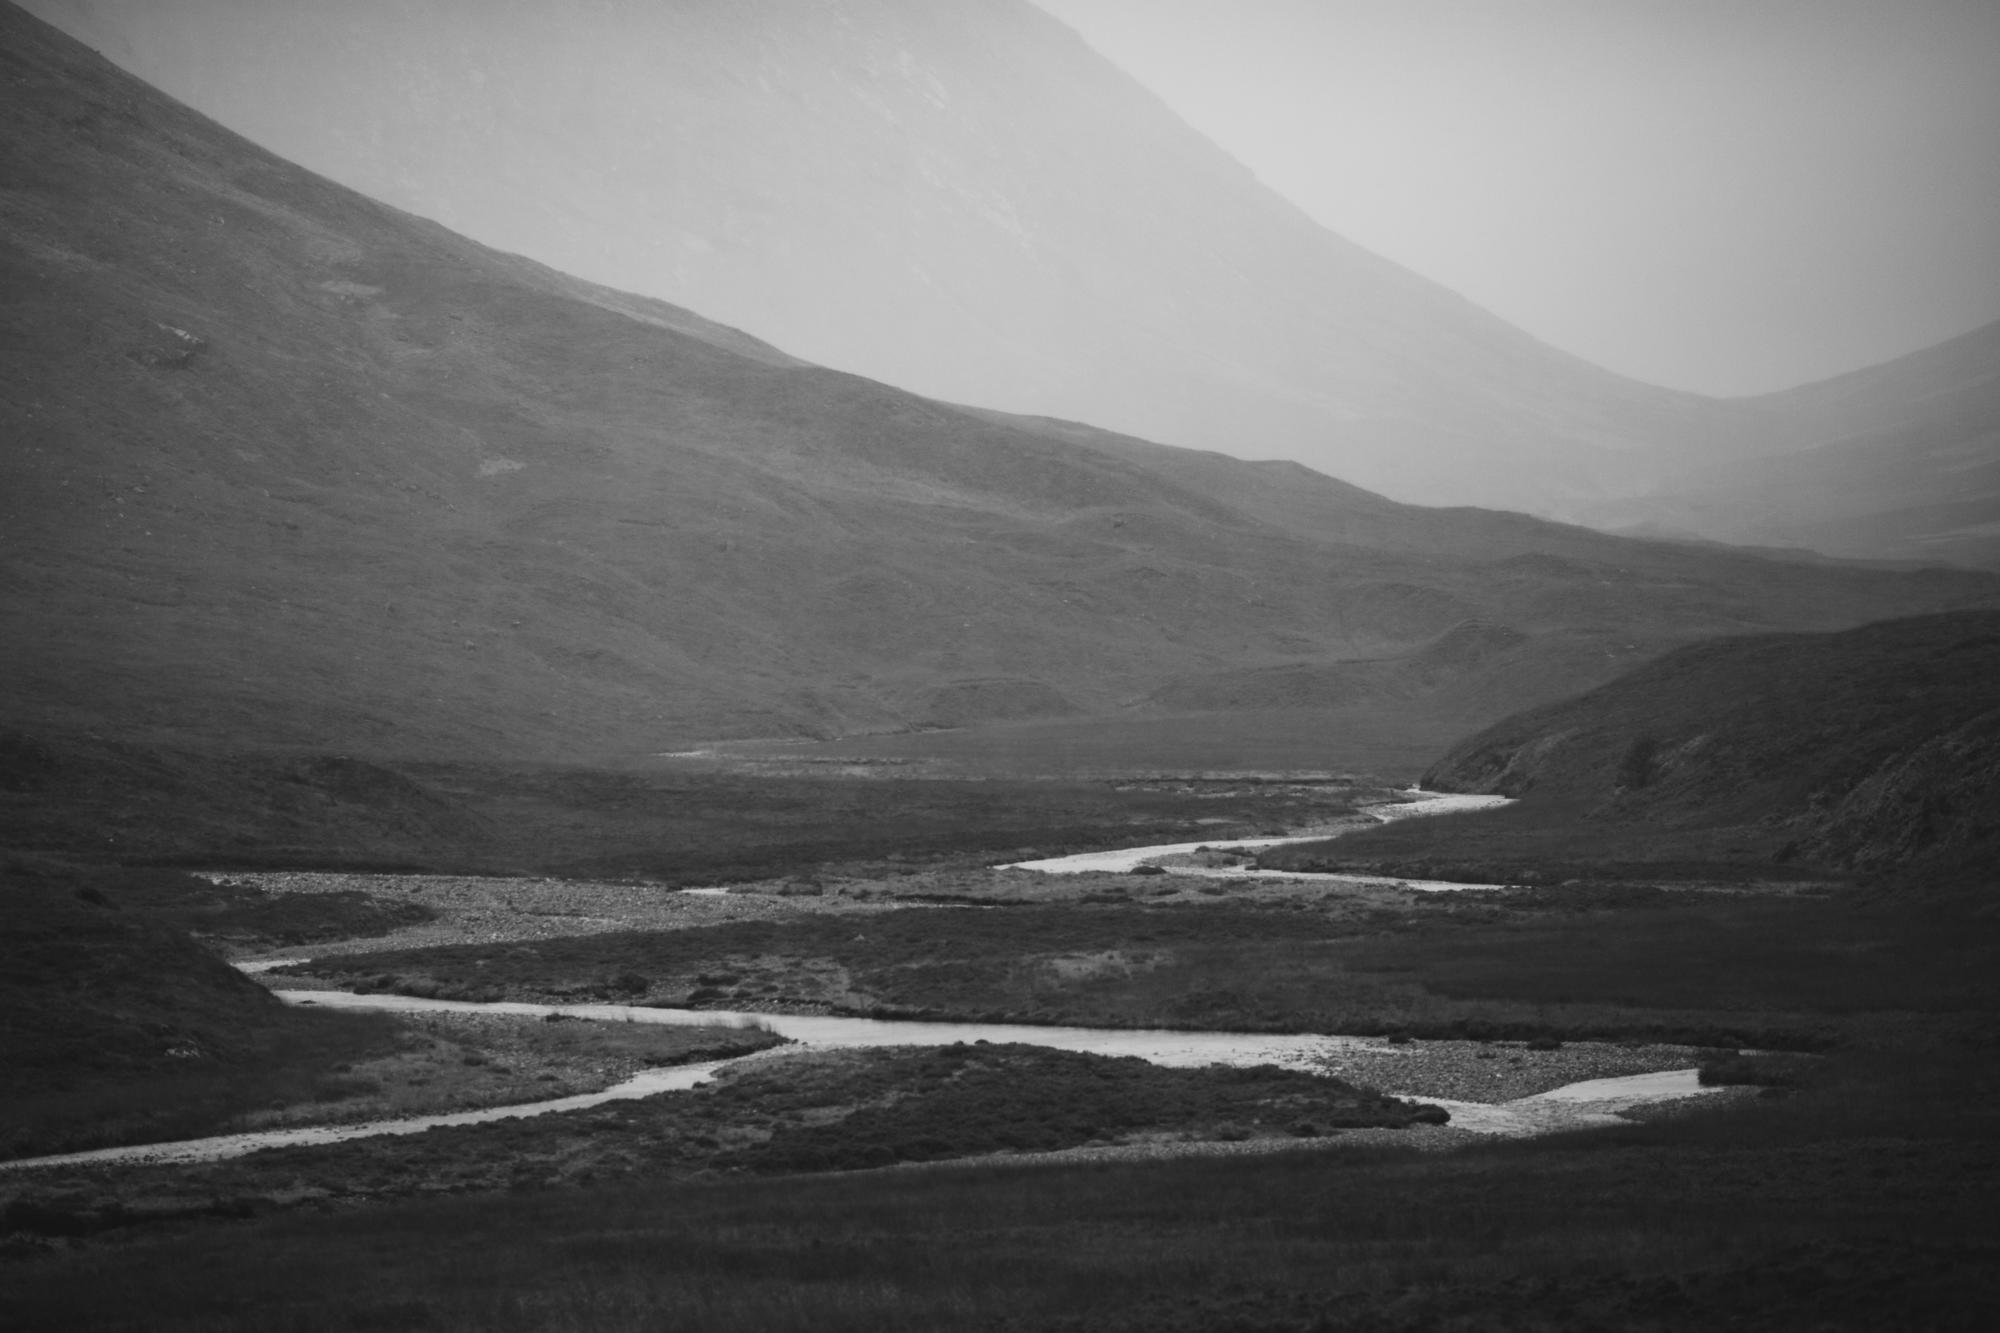 glencoe-scotland-landscape-photography-26